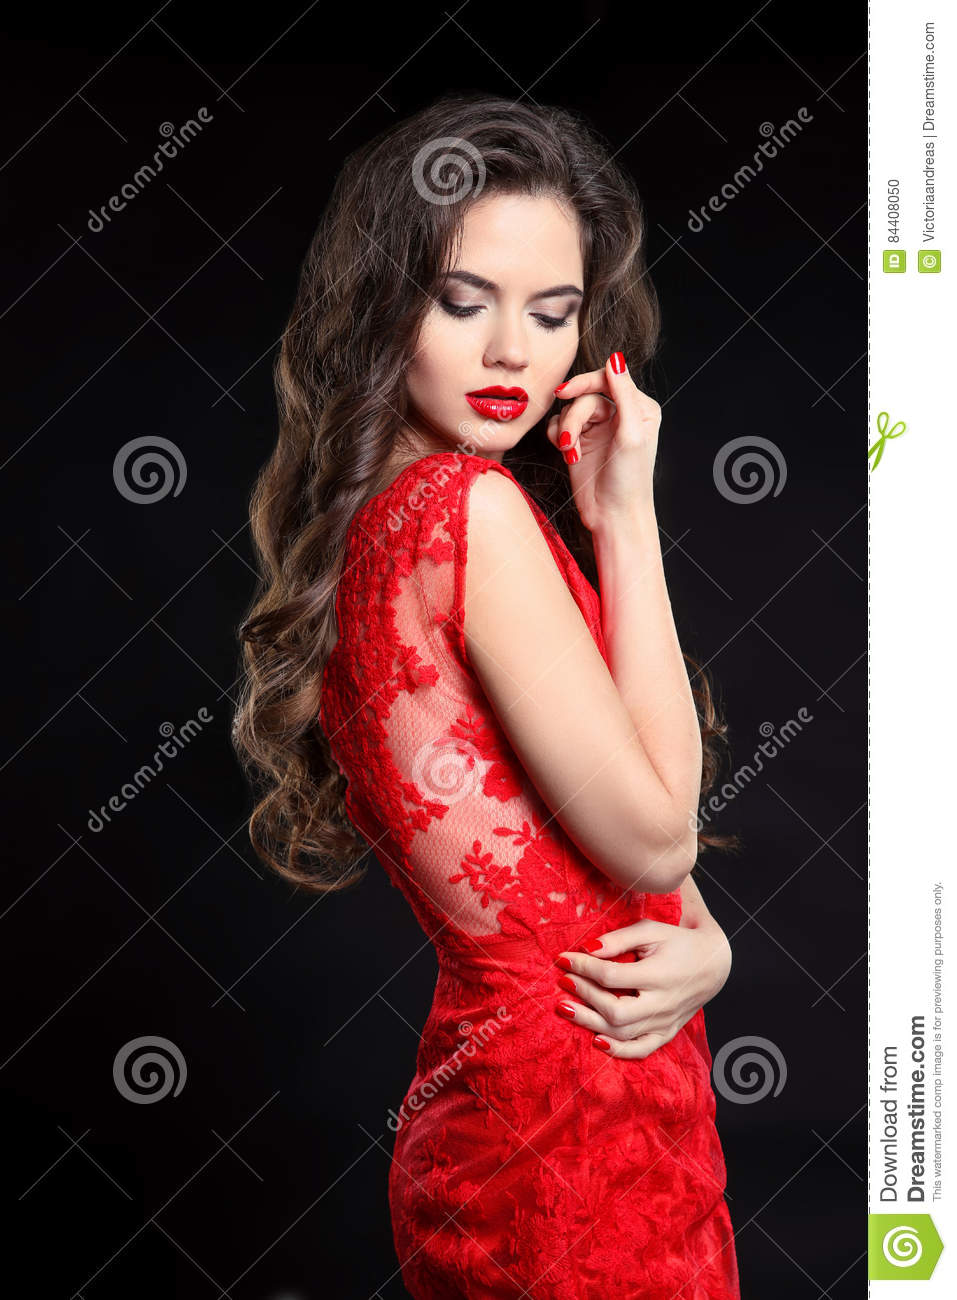 605303920e637 Beautiful woman posing in red dress isolated on black background. Beauty  makeup. Long healthy curly hair. Fashion style studio photo. Manicured  nails.